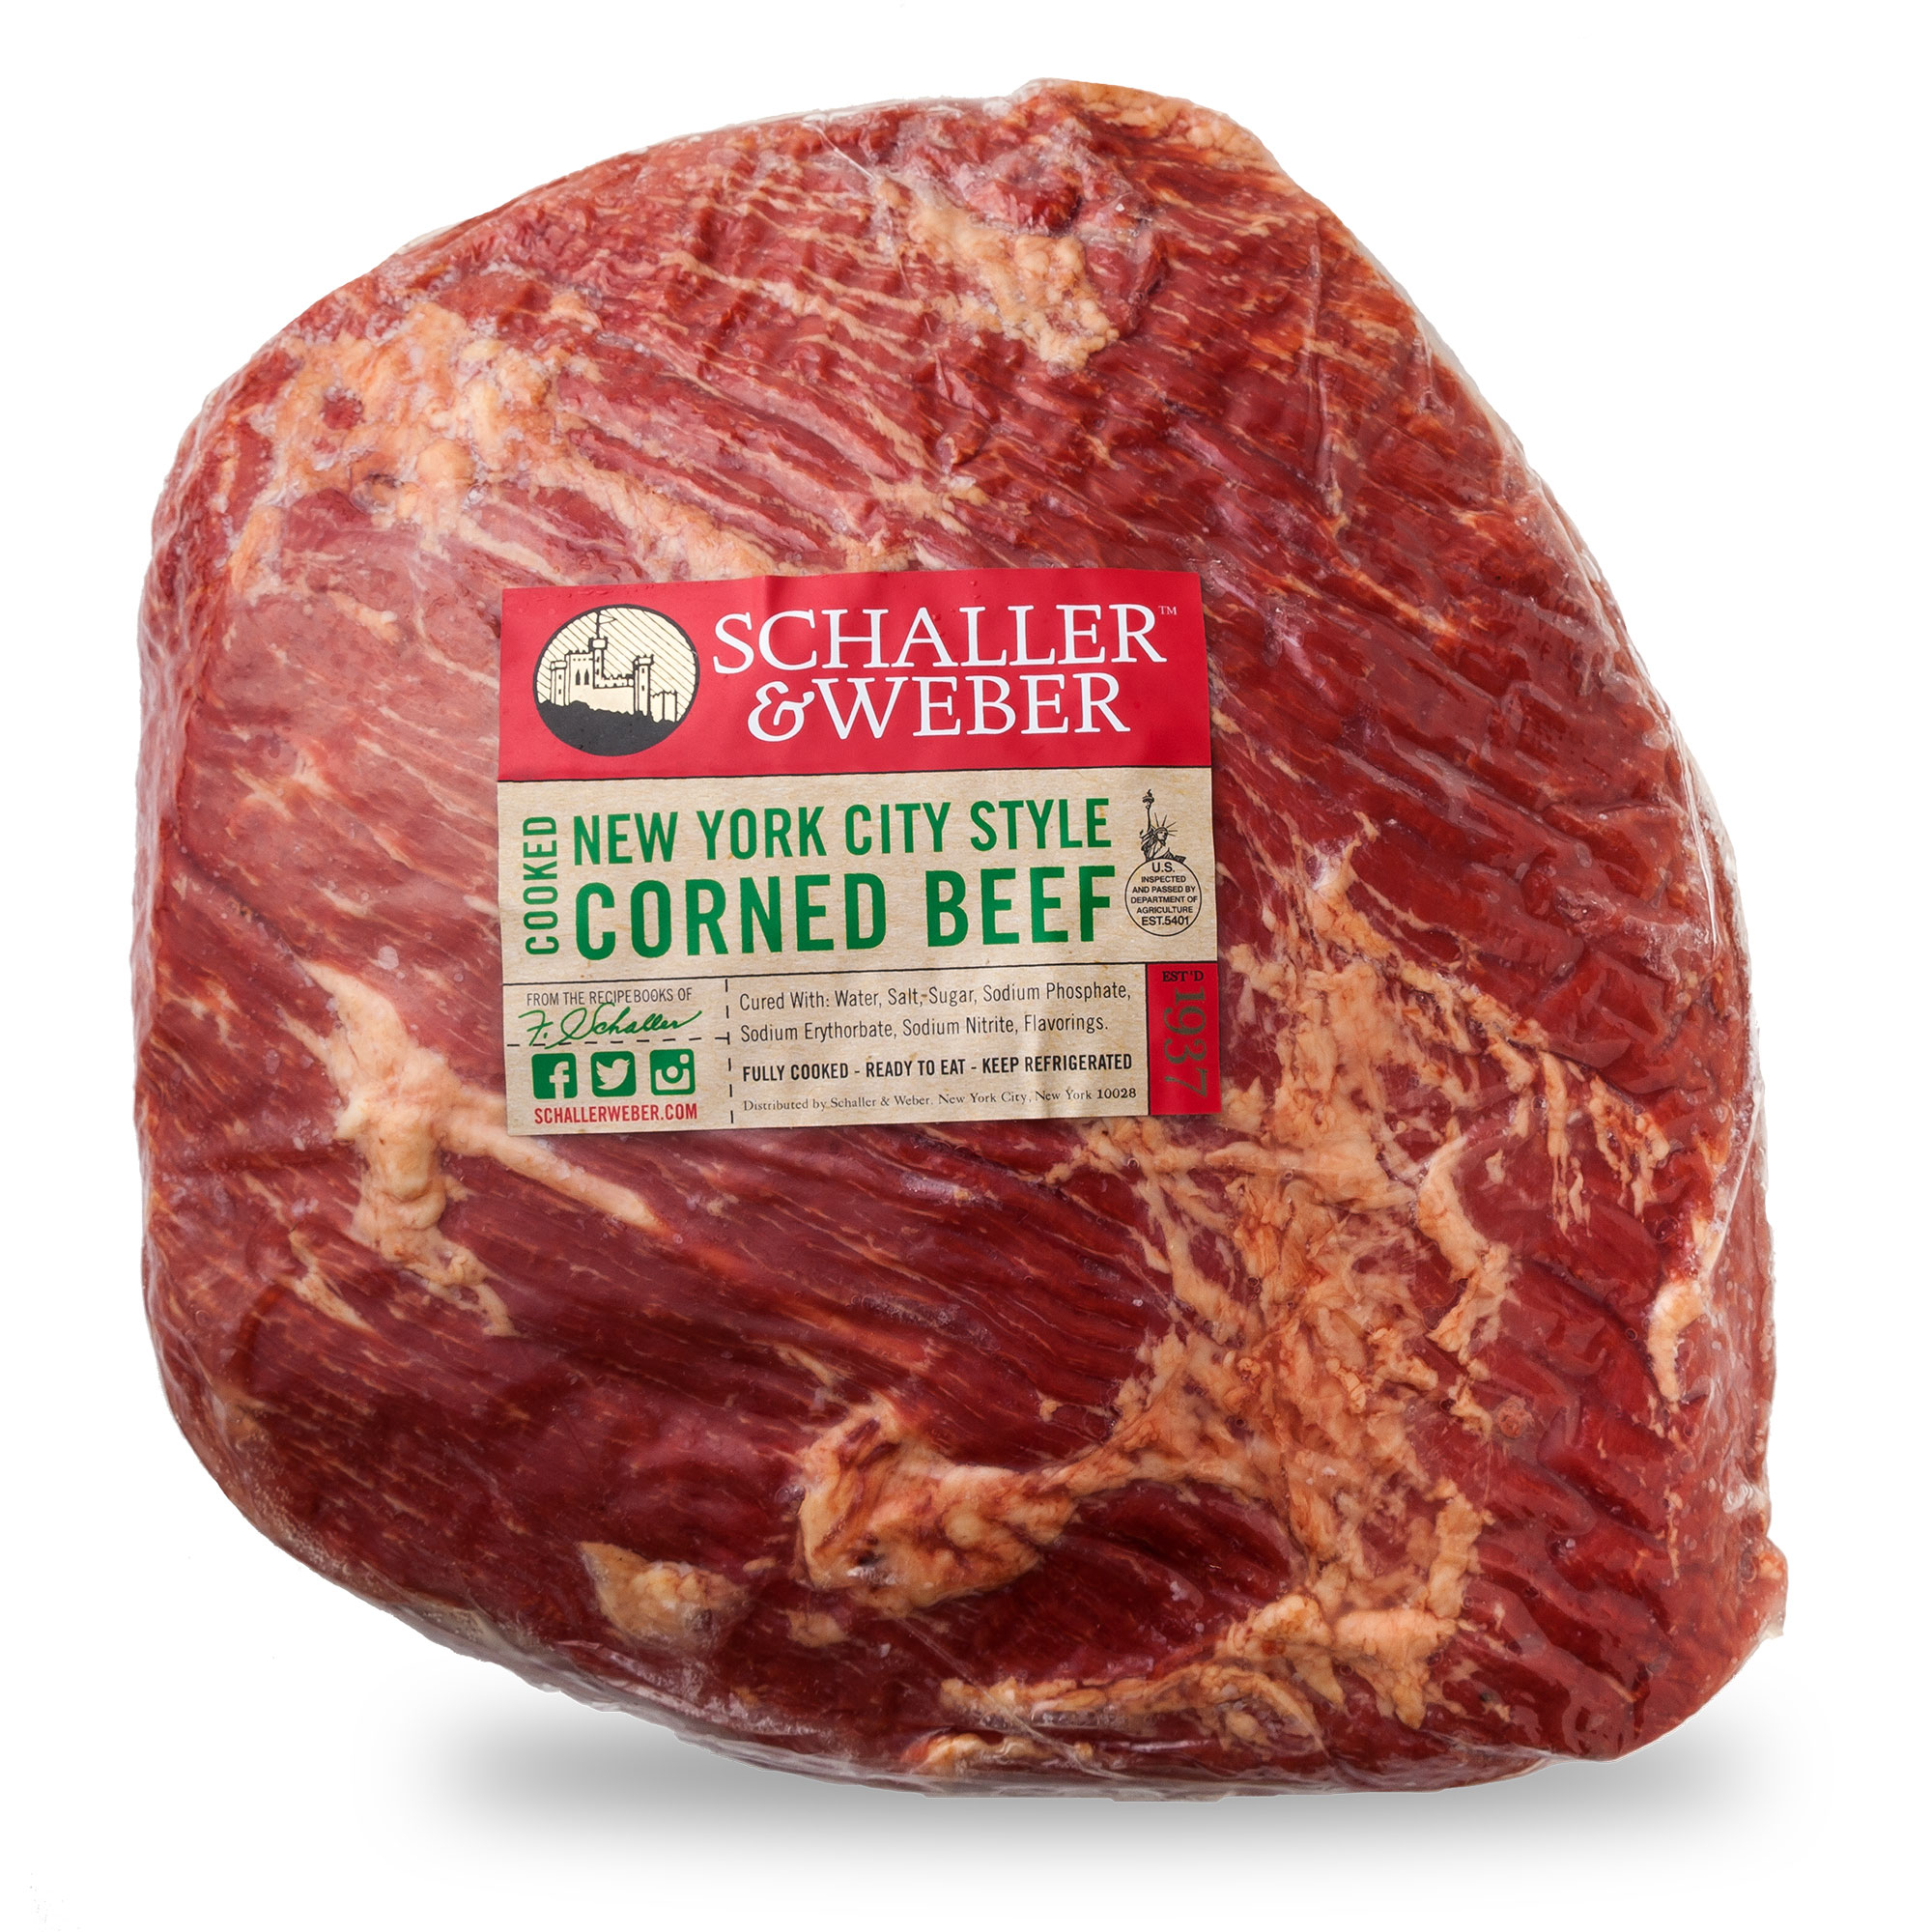 Michael Jordan Best Wallpapers likewise Beef Mortadella W Pepper 2 5 Kg moreover The top 30 sandwiches in toronto by neighbourhood further Beef Cuts Chart 2014 10 additionally Cold Cuts Meat Sandwiches. on brisket cold cuts